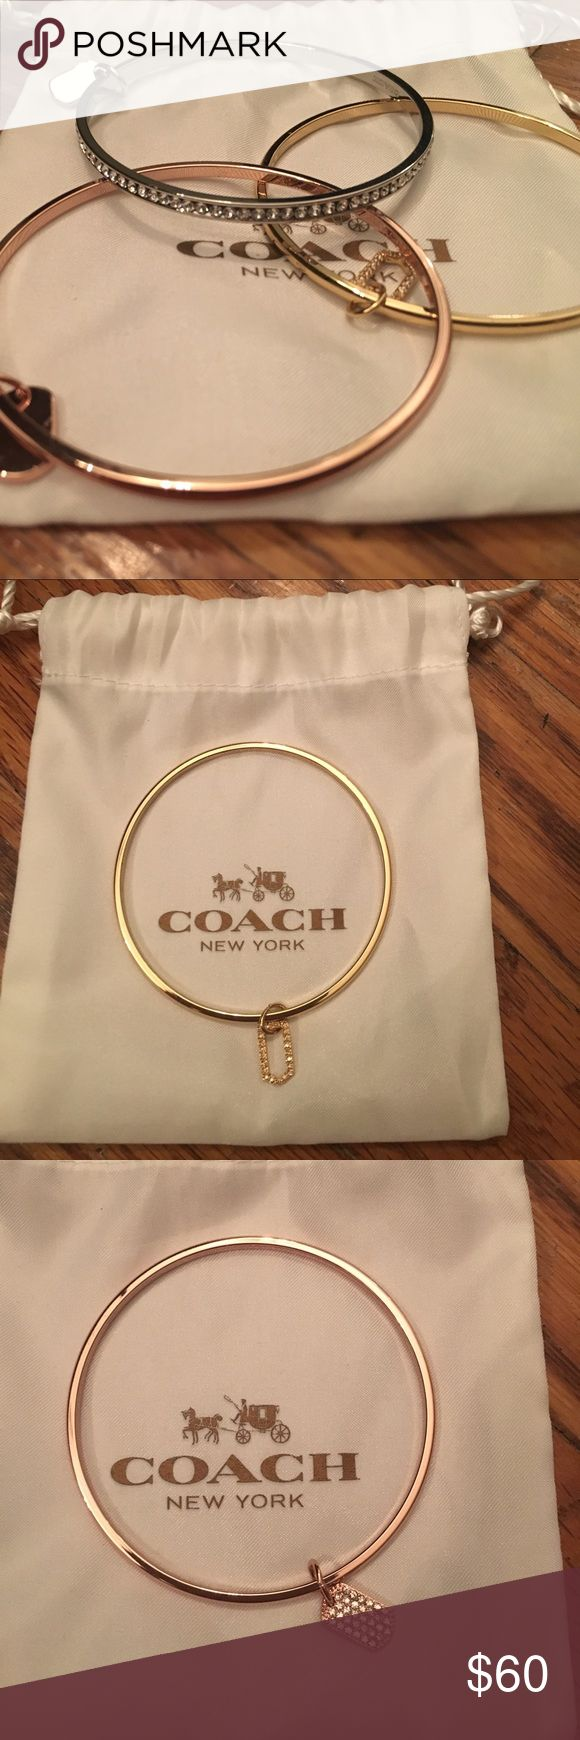 NWOT 3 Coach Bracelets NWOT 3 Coach Bracelets in silver, gold and rose gold. The silver bracelet has fake diamonds around the side. These Bracelets are a stand out piece and can help dress up or down an outfit! Comes with white coach duster Coach Jewelry Bracelets